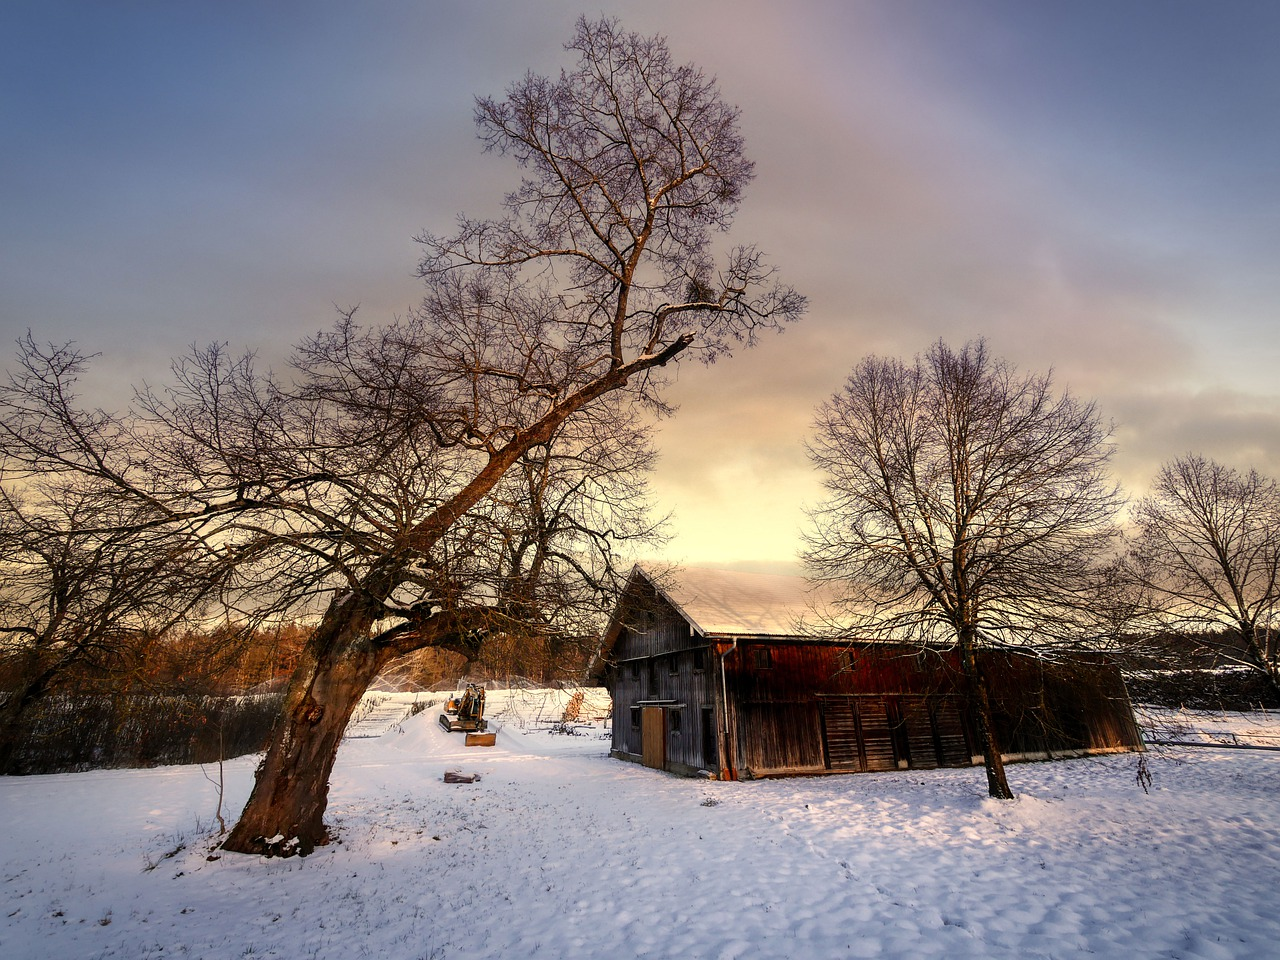 Barn House Trees Snow Wooden House  - fietzfotos / Pixabay